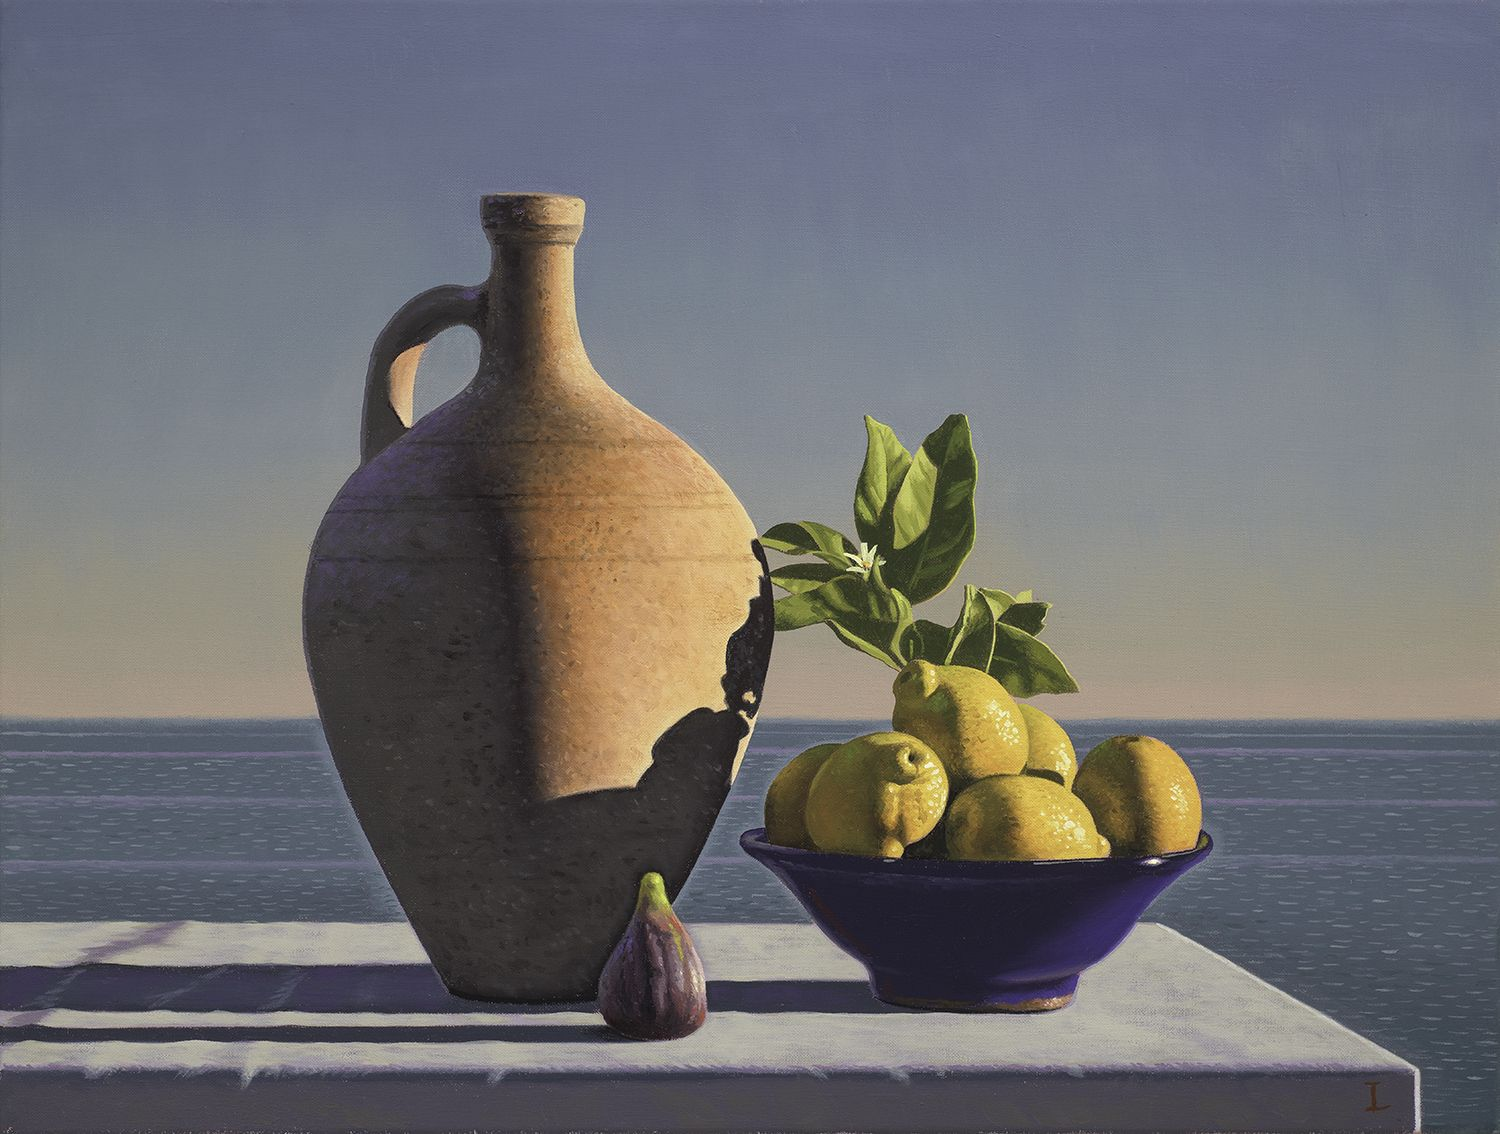 David Ligare (b. 1945), Still Life with Lemons, Fig and Pot, 2018